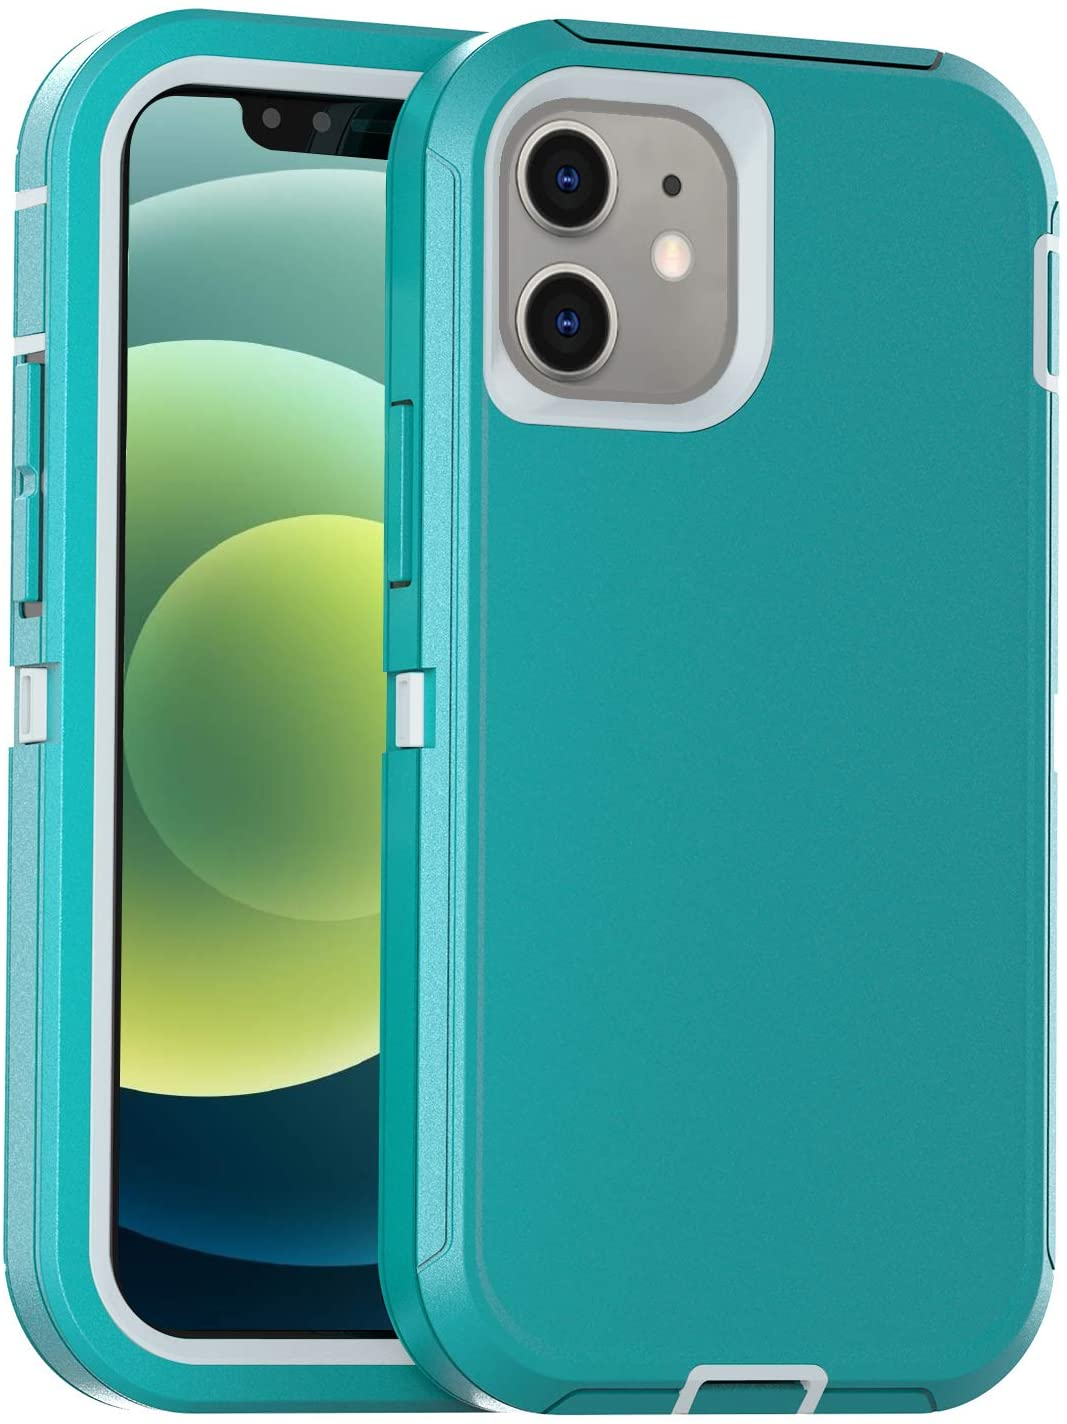 FOGEEK Case Compatible with iPhone 12/12 Pro, Heavy Duty Protective Case, Drop Protection Rugged Case [Shockproof] Compatible with 12/12 Pro 2020 [6.1 inch] (Aqua/White)